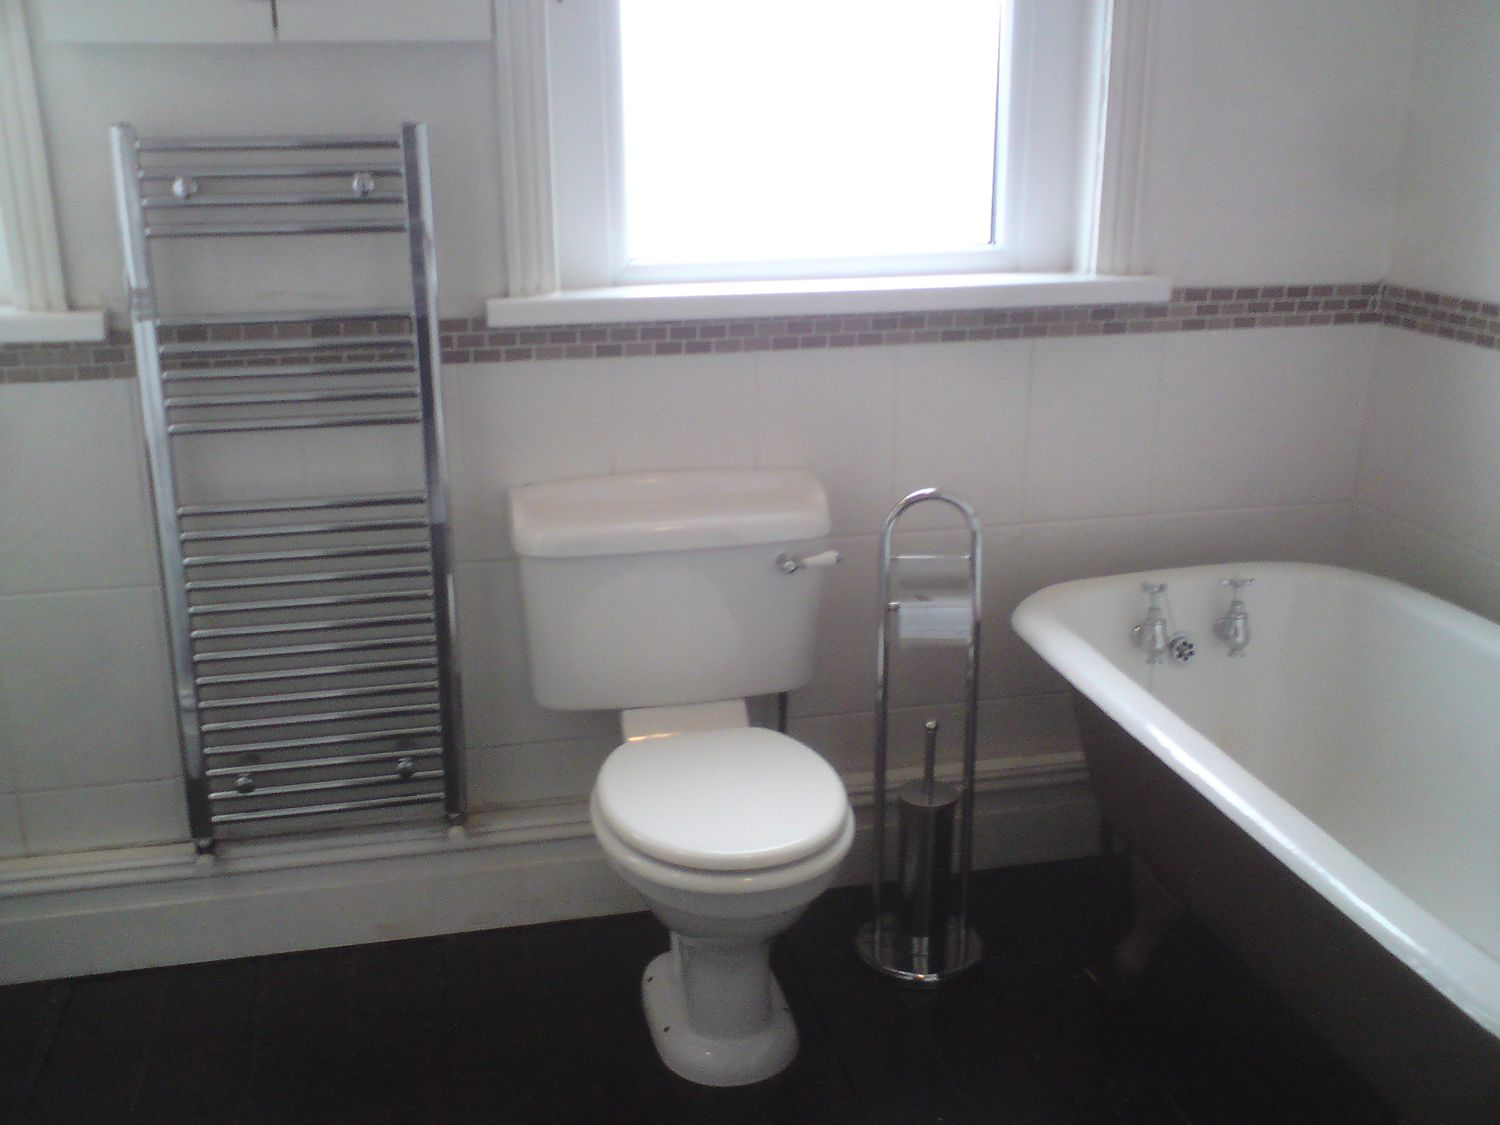 The same view with the old loo with the towel radiator next to it.